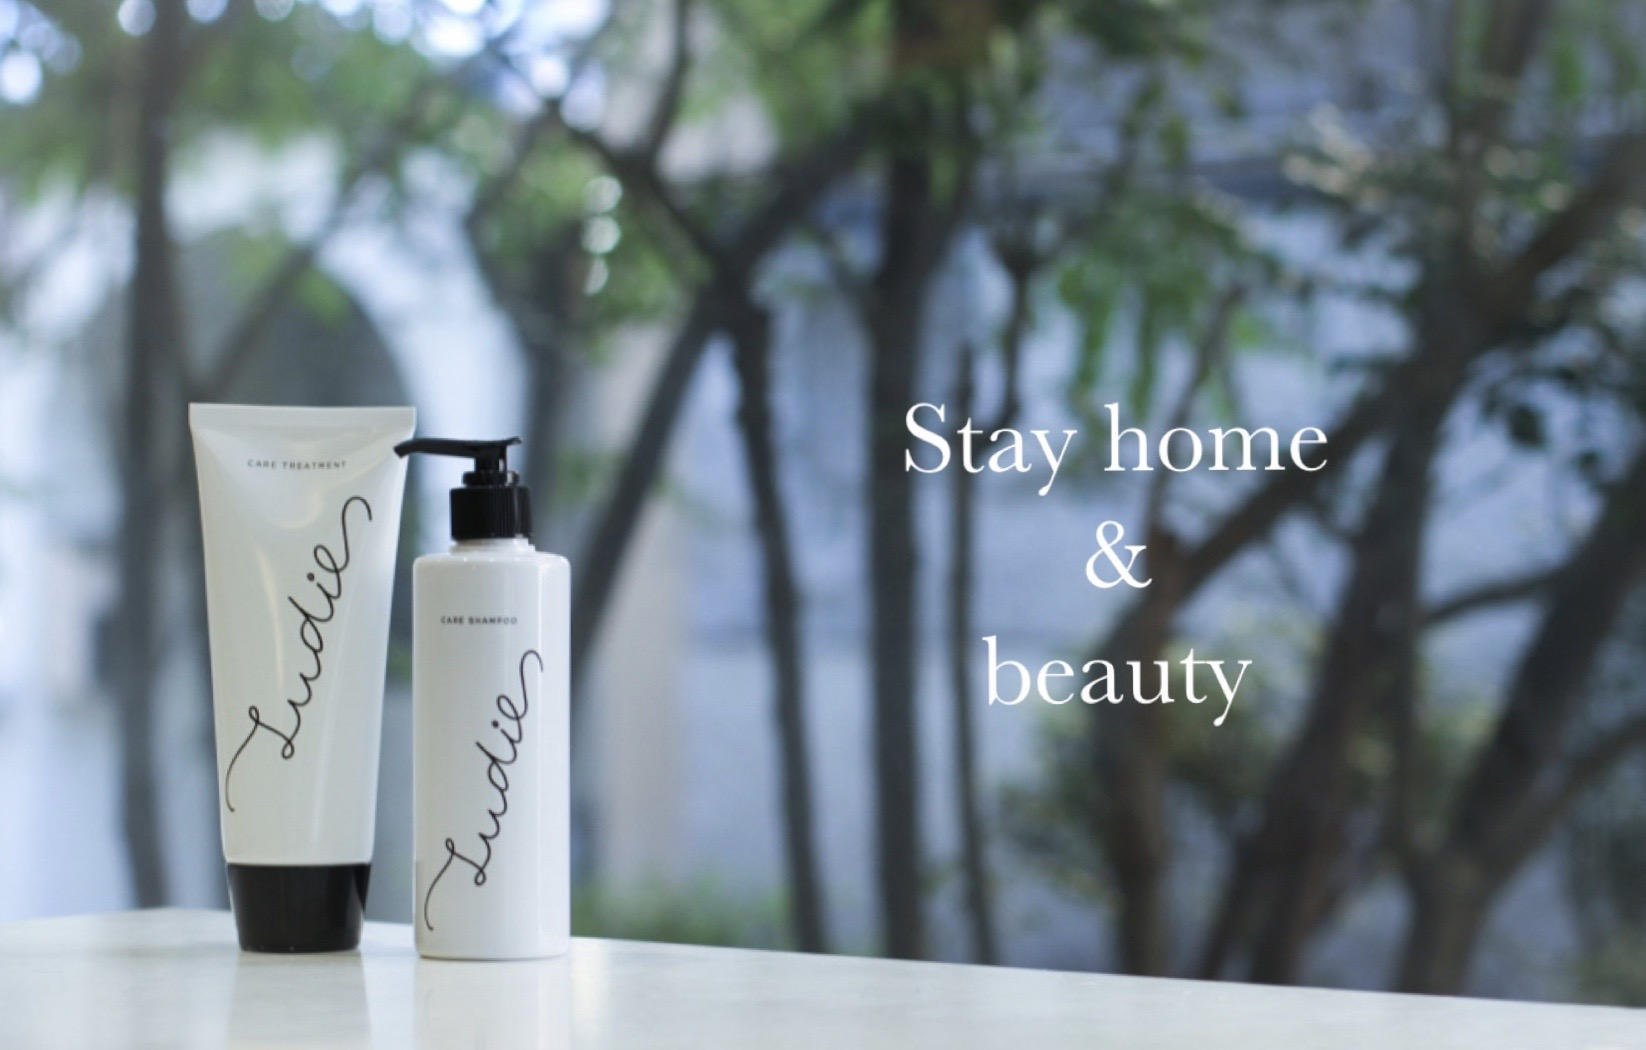 『Stay home & beauty』